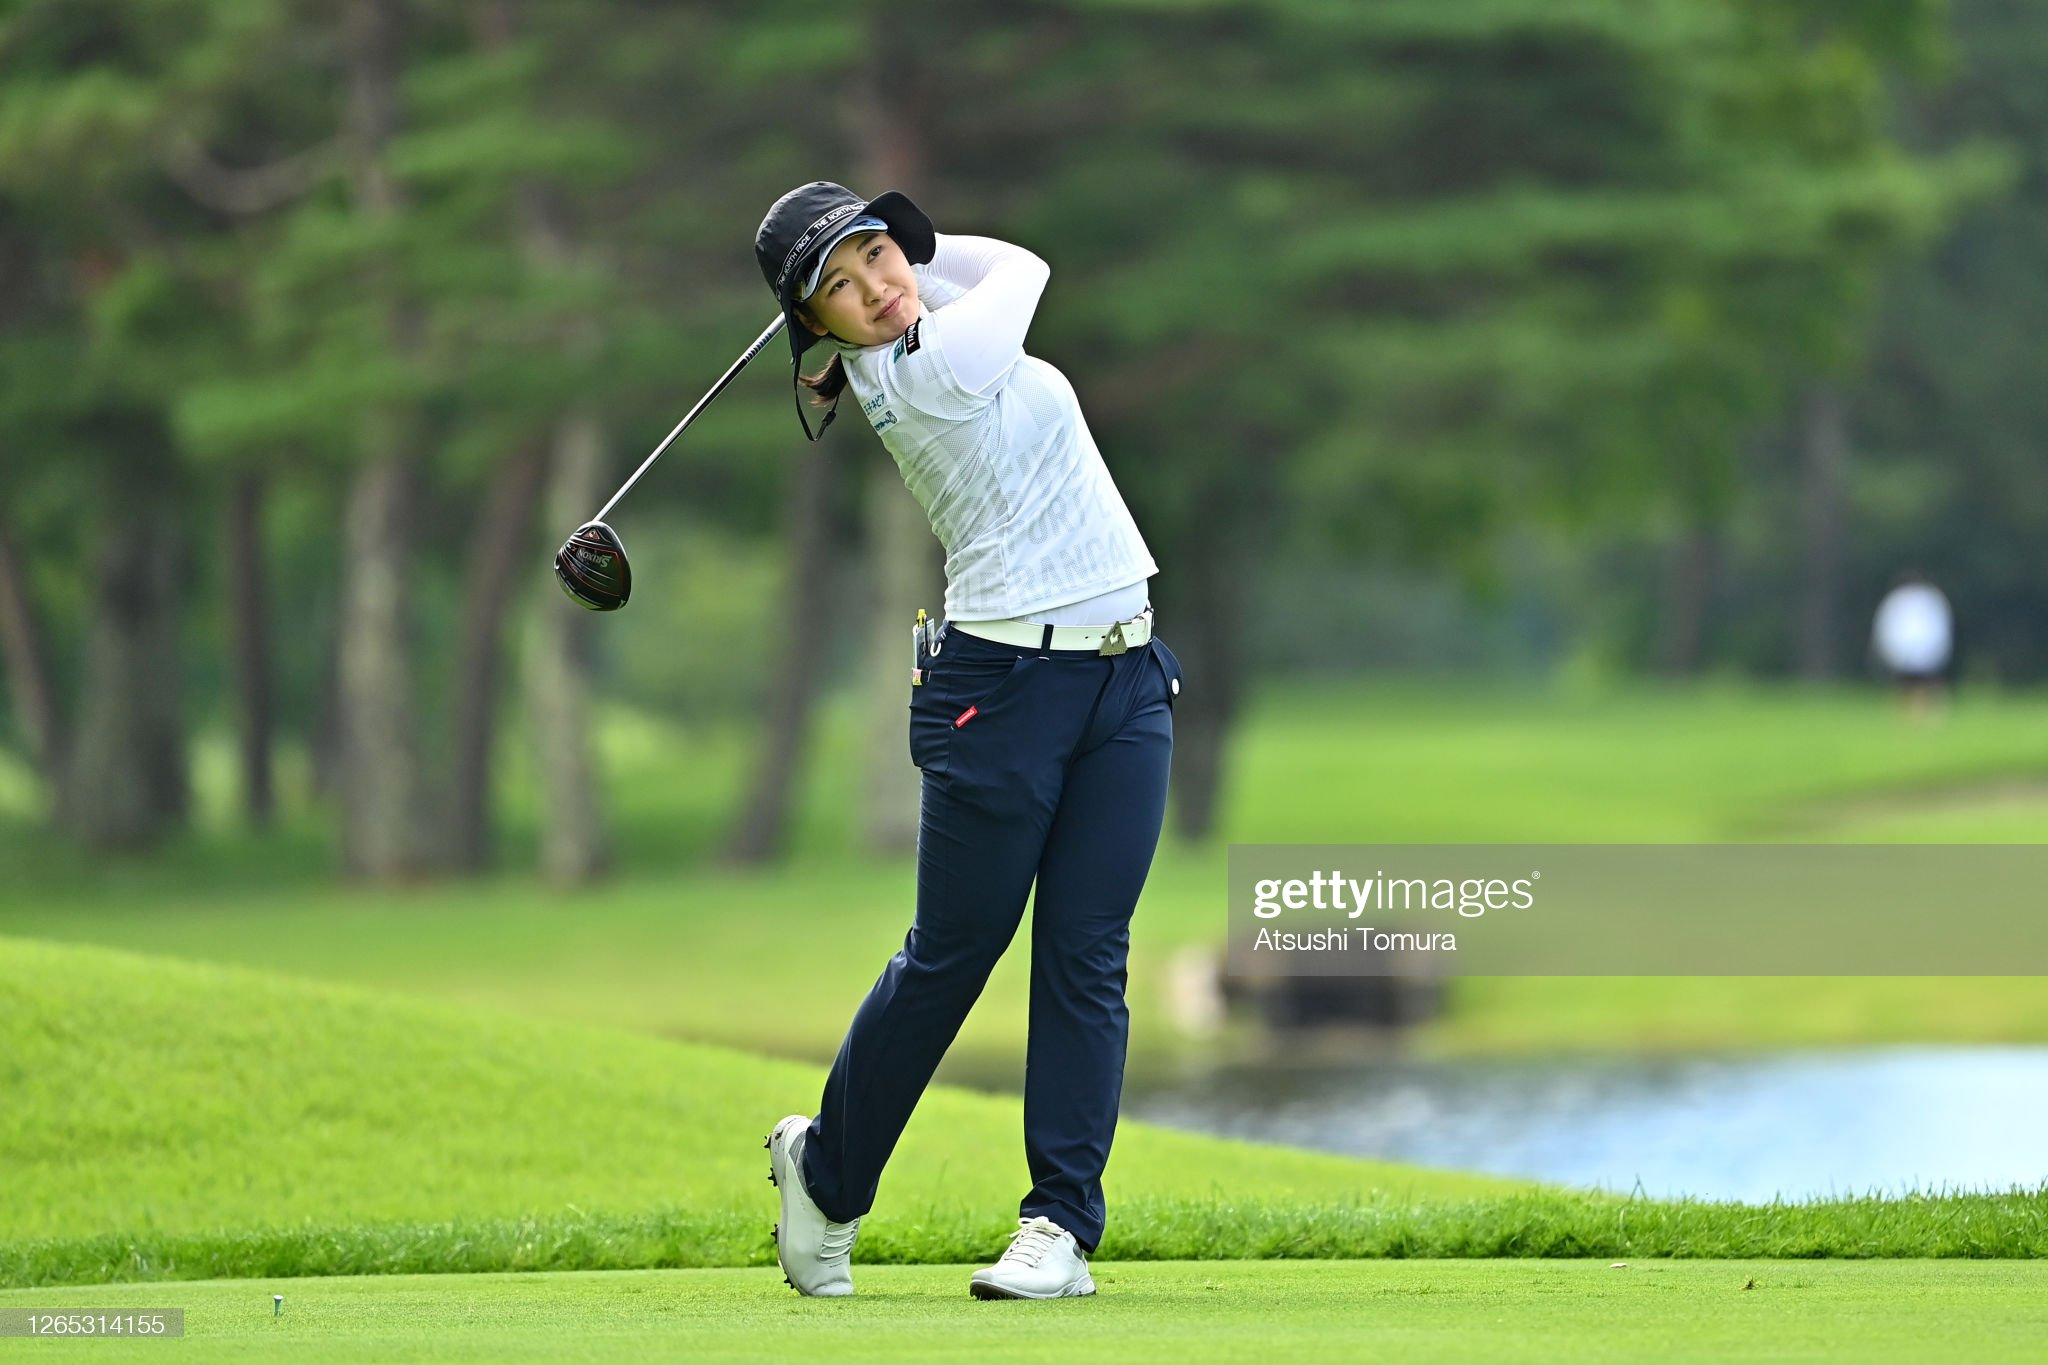 https://media.gettyimages.com/photos/sakura-koiwai-of-japan-plays-a-shot-on-the-4th-hole-during-a-practice-picture-id1265314155?s=2048x2048